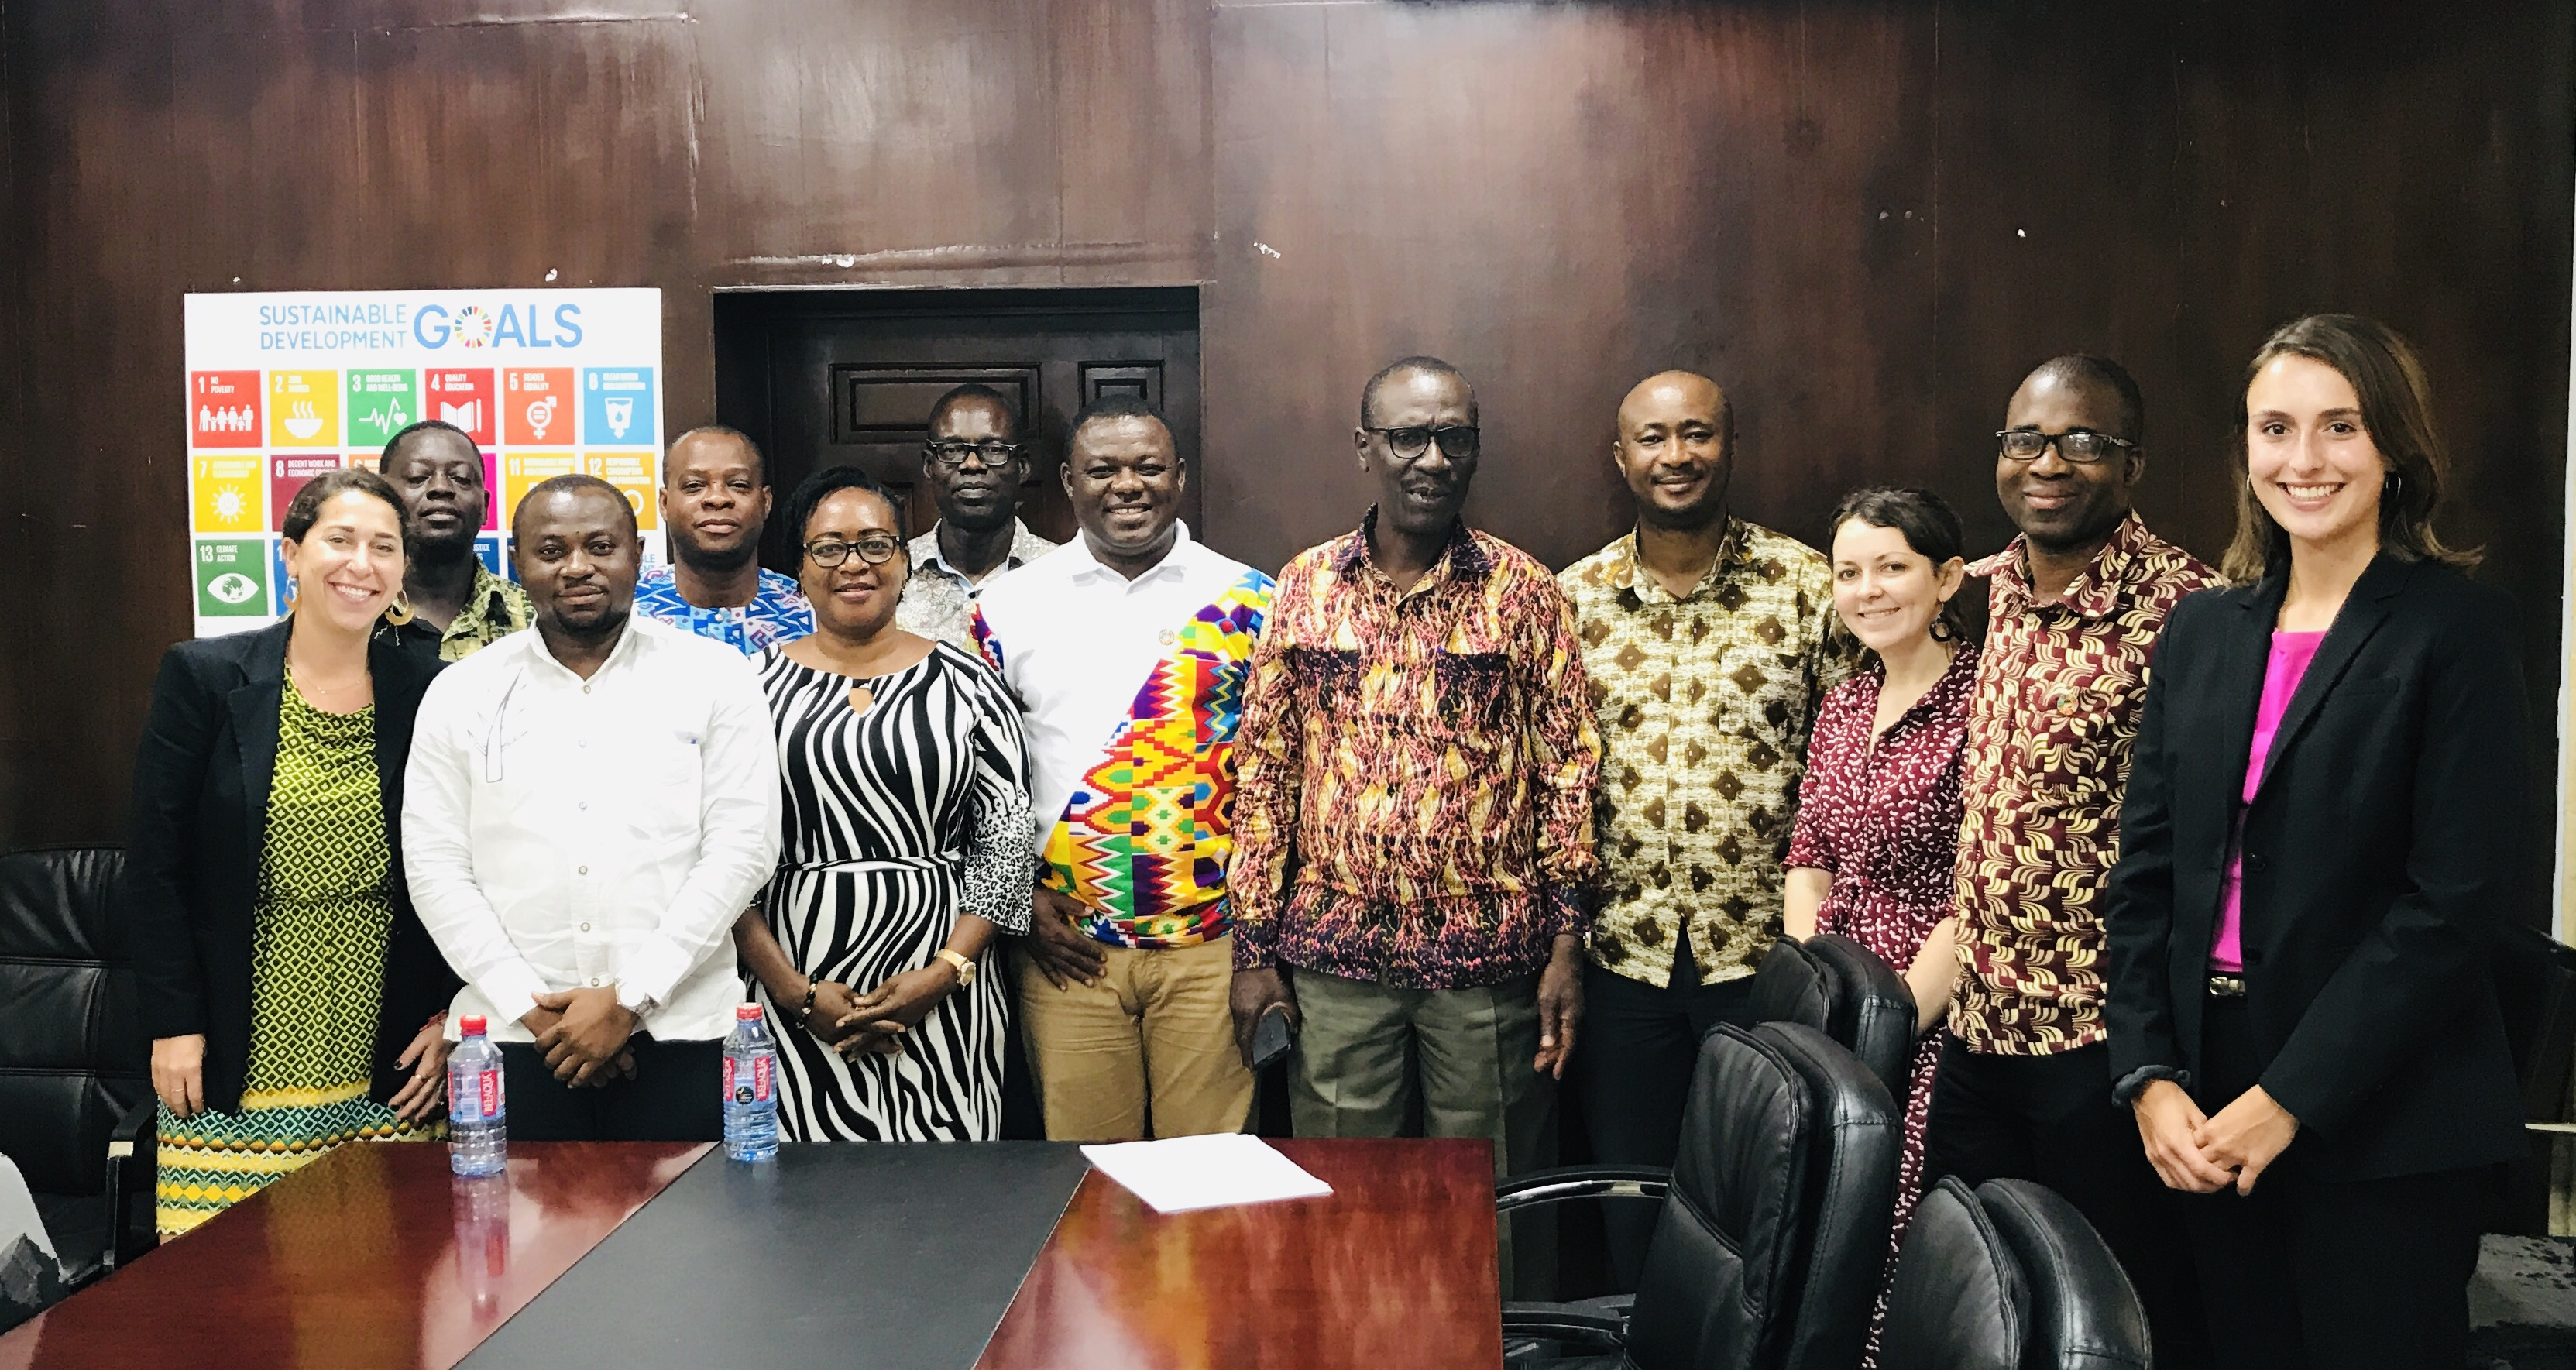 AidData staff meet with the Ghana Statistical Service (GSS) and the Ministry of Health during a trip in fall 2019. Photo by Elizabeth Teare for AidData.